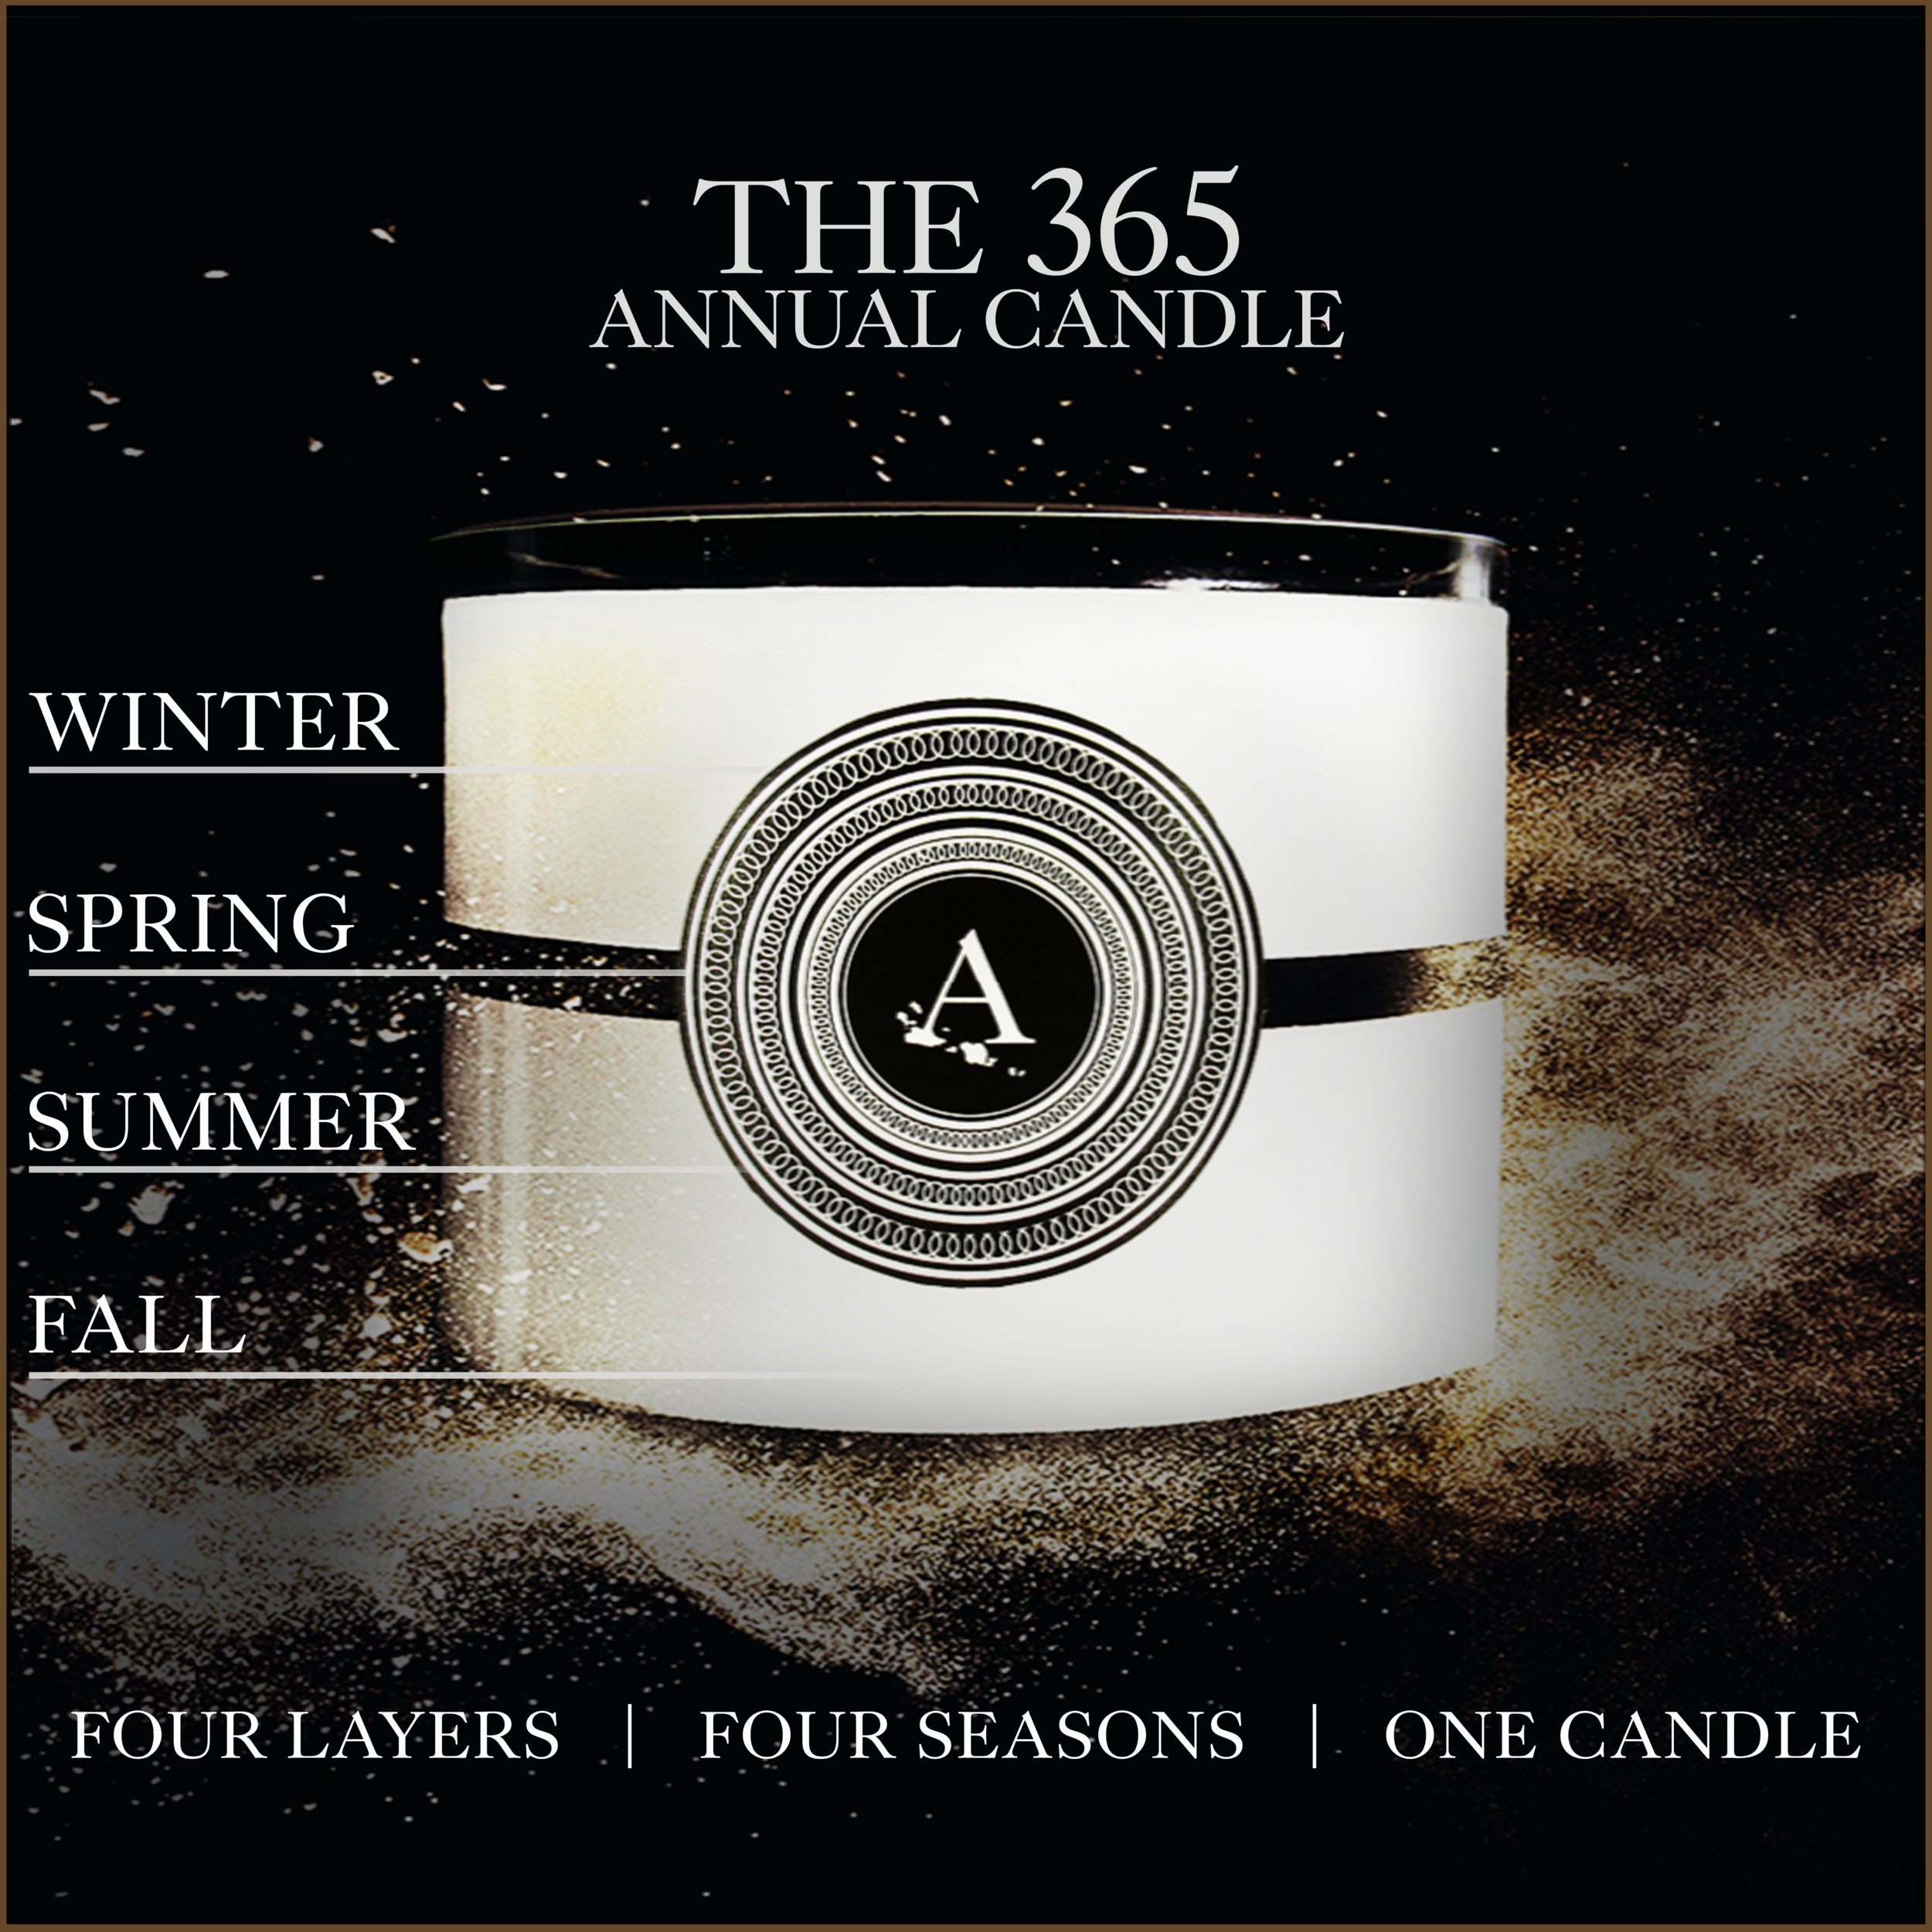 The 365 Annual Candle Avant Candle